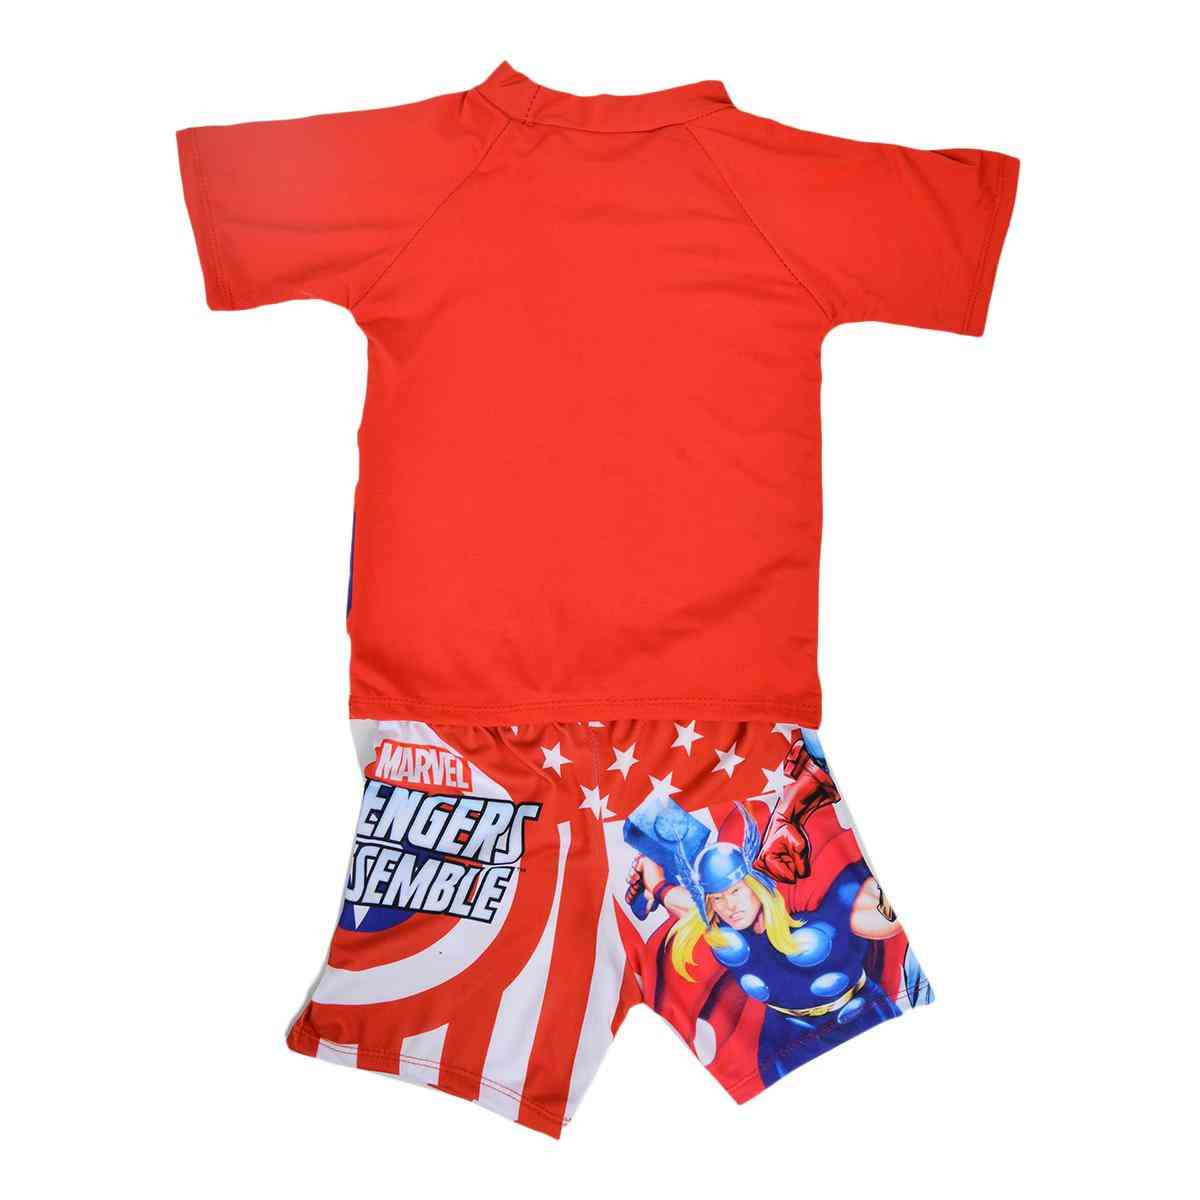 Captain America Swimming Suit for Boys - Red (2 to 3 Years)